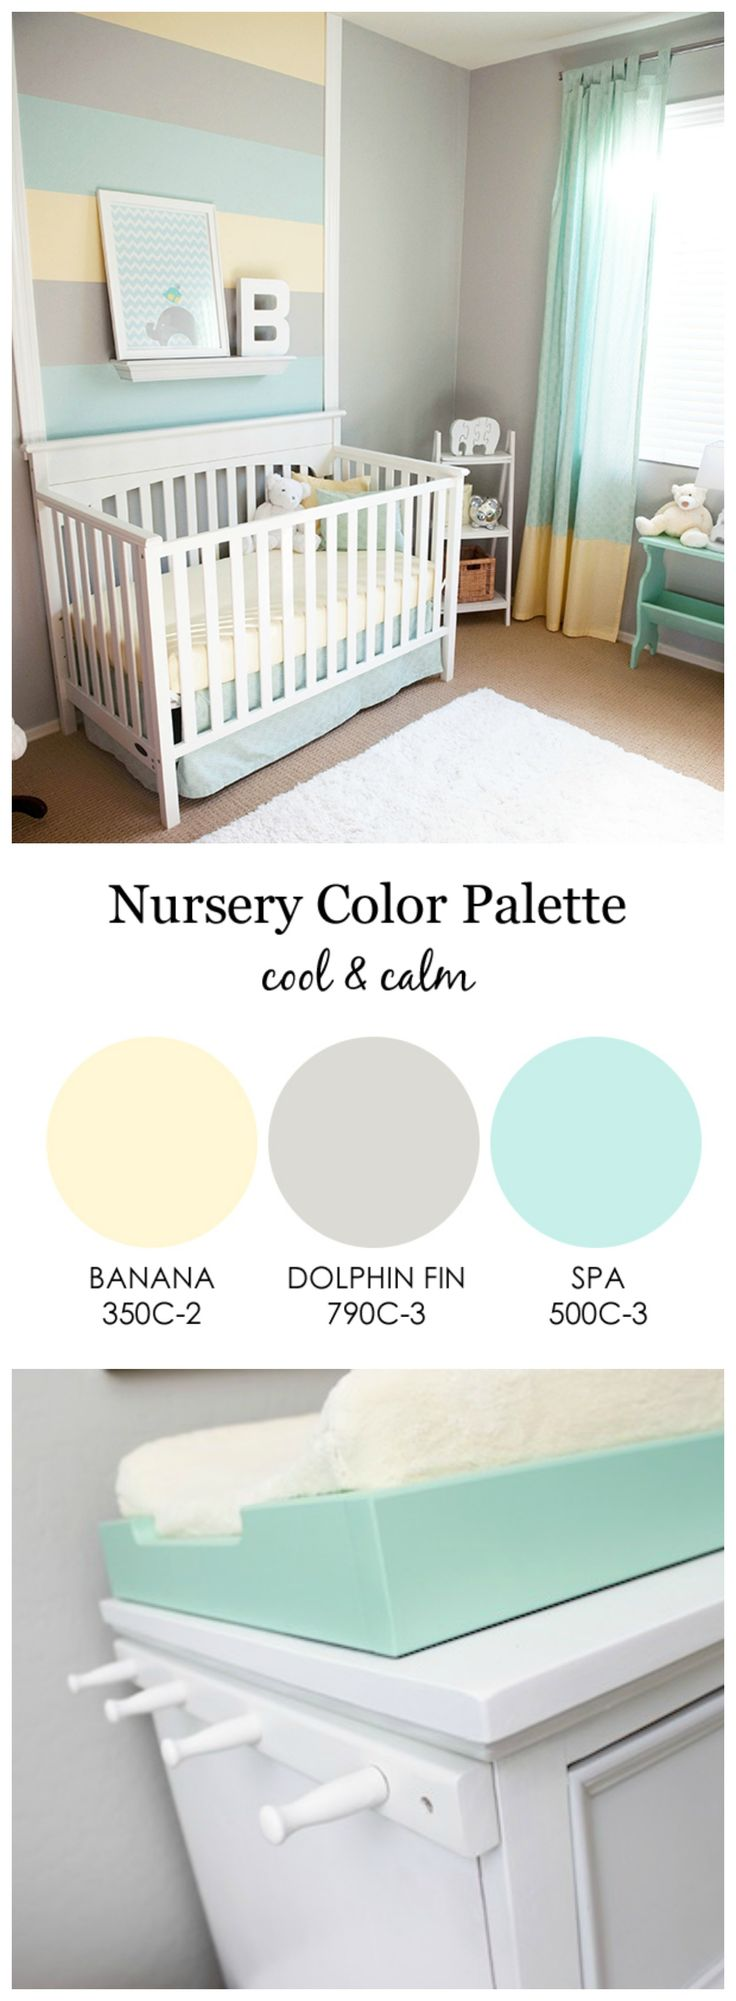 Gender Neutral Color Palette Classy Best 25 Gender Neutral Nurseries Ideas On Pinterest  Baby Room . 2017